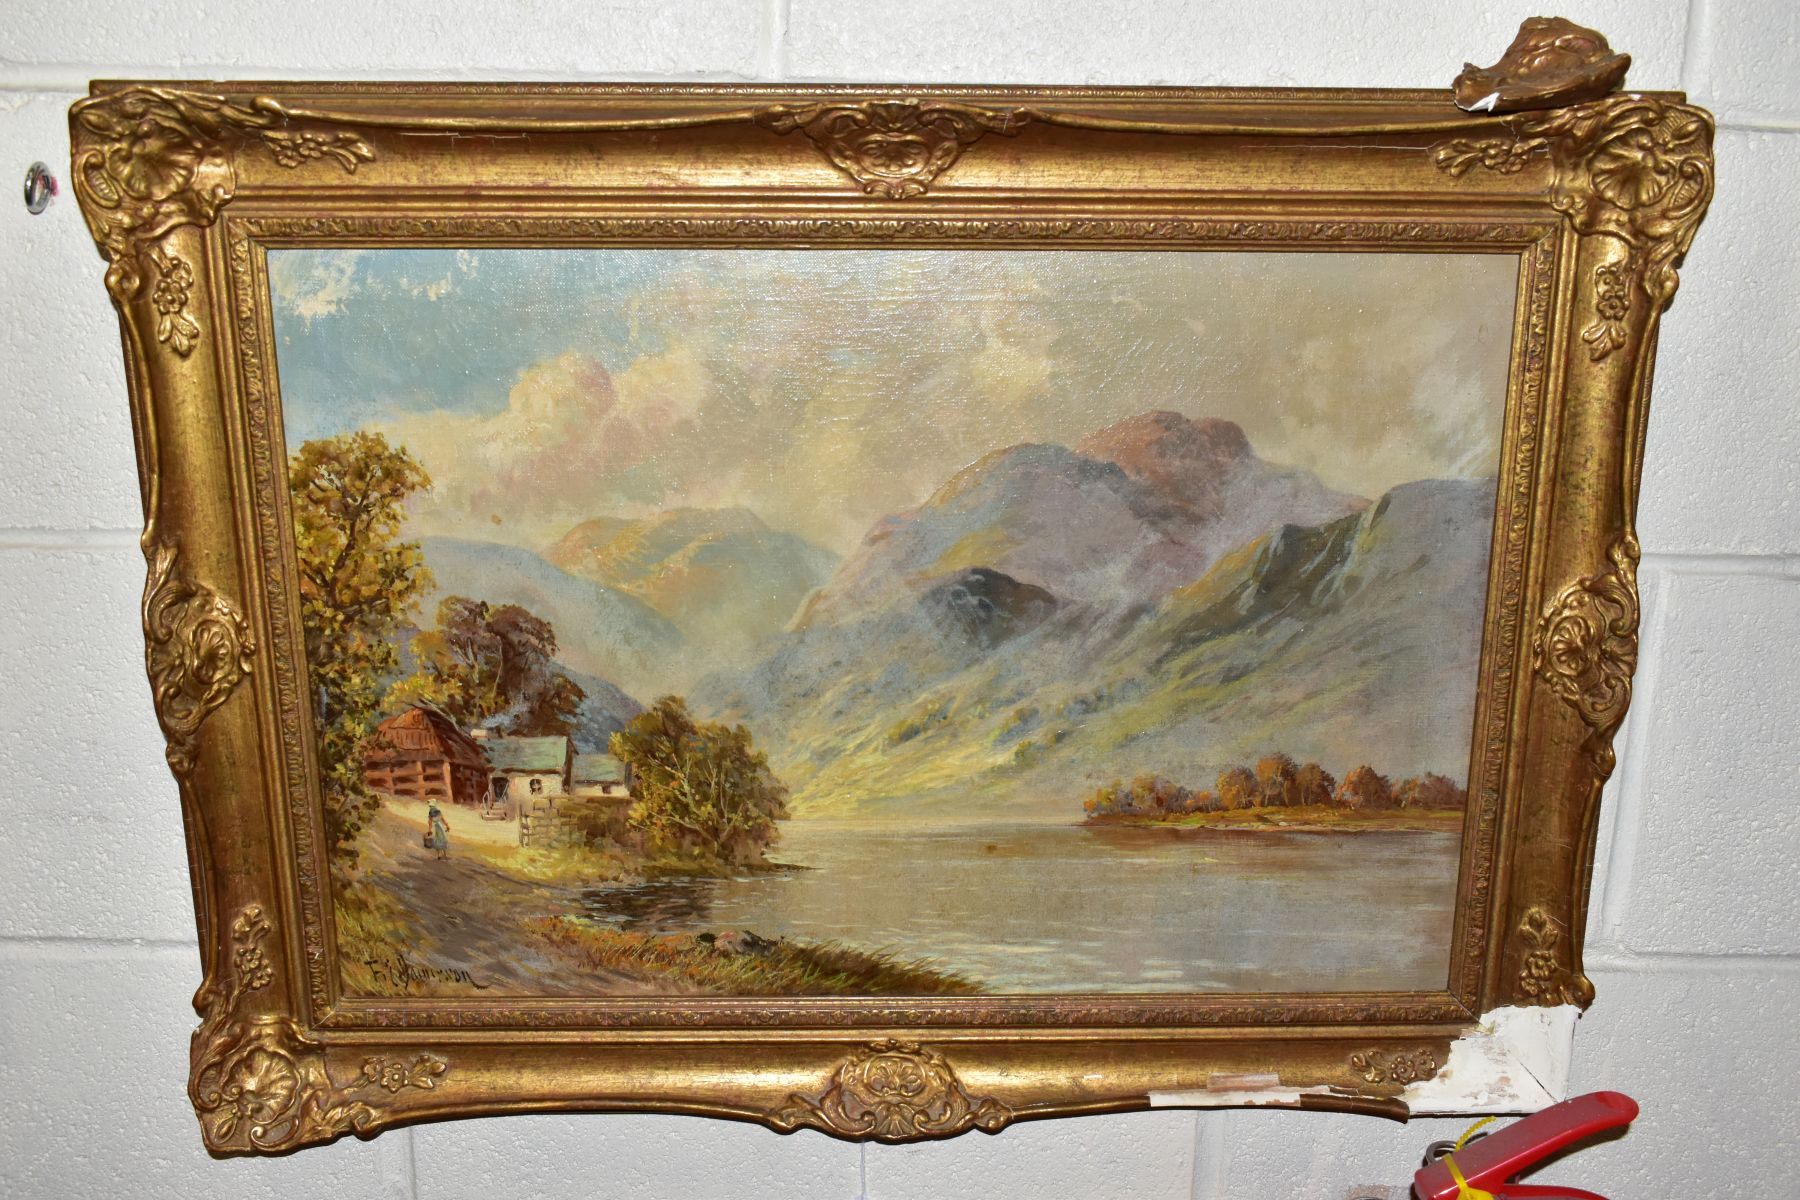 FRANCIS E. JAMIESON (1895-1950) 'LOCH SHIEL' a Loch and female figure to foreground mountains to the